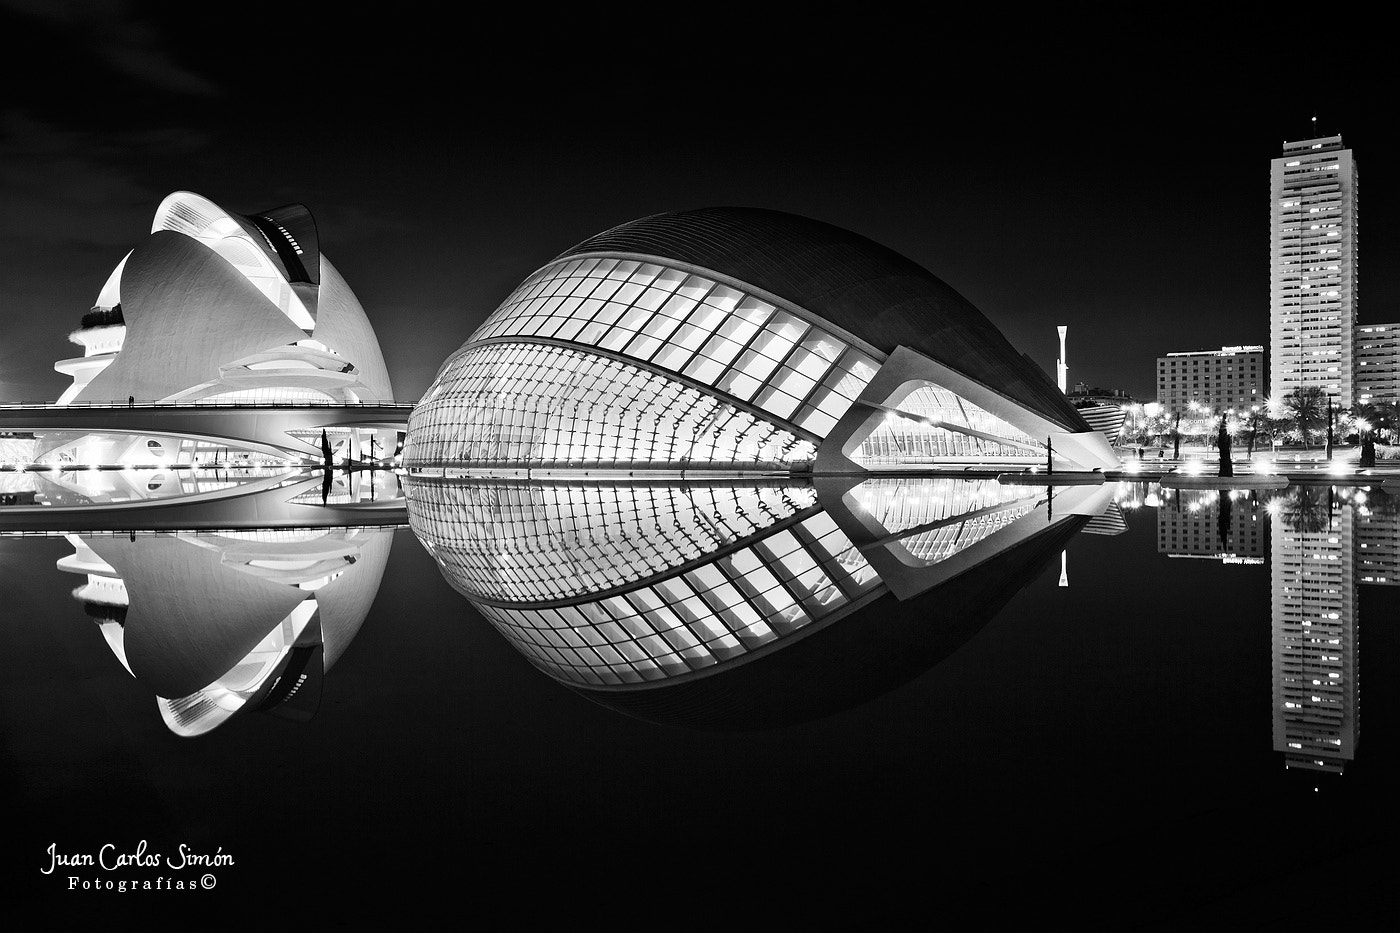 Photograph Reflejos en B/N (reflex in B/W) by Juan Carlos Simón on 500px